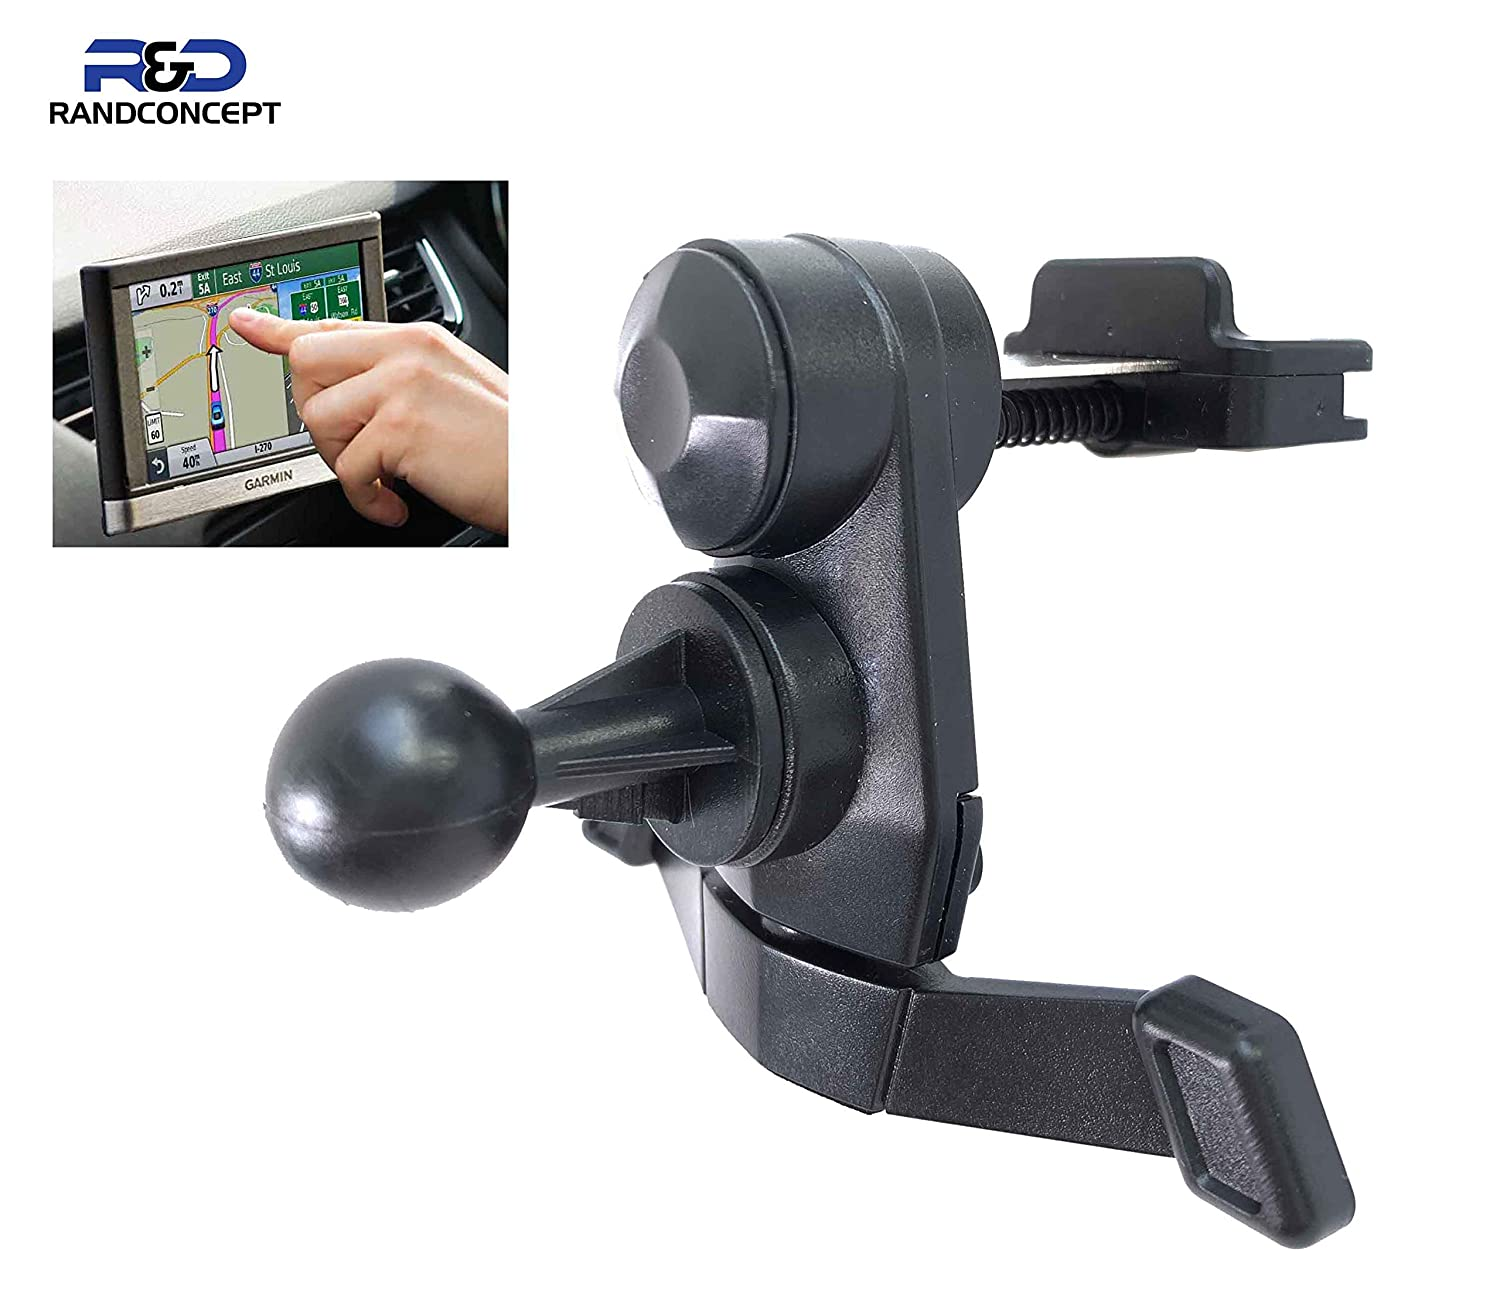 New Usefull Universal Car Vehicle Air Vent Mount Holder Clip For Garmin Nuvi GPS